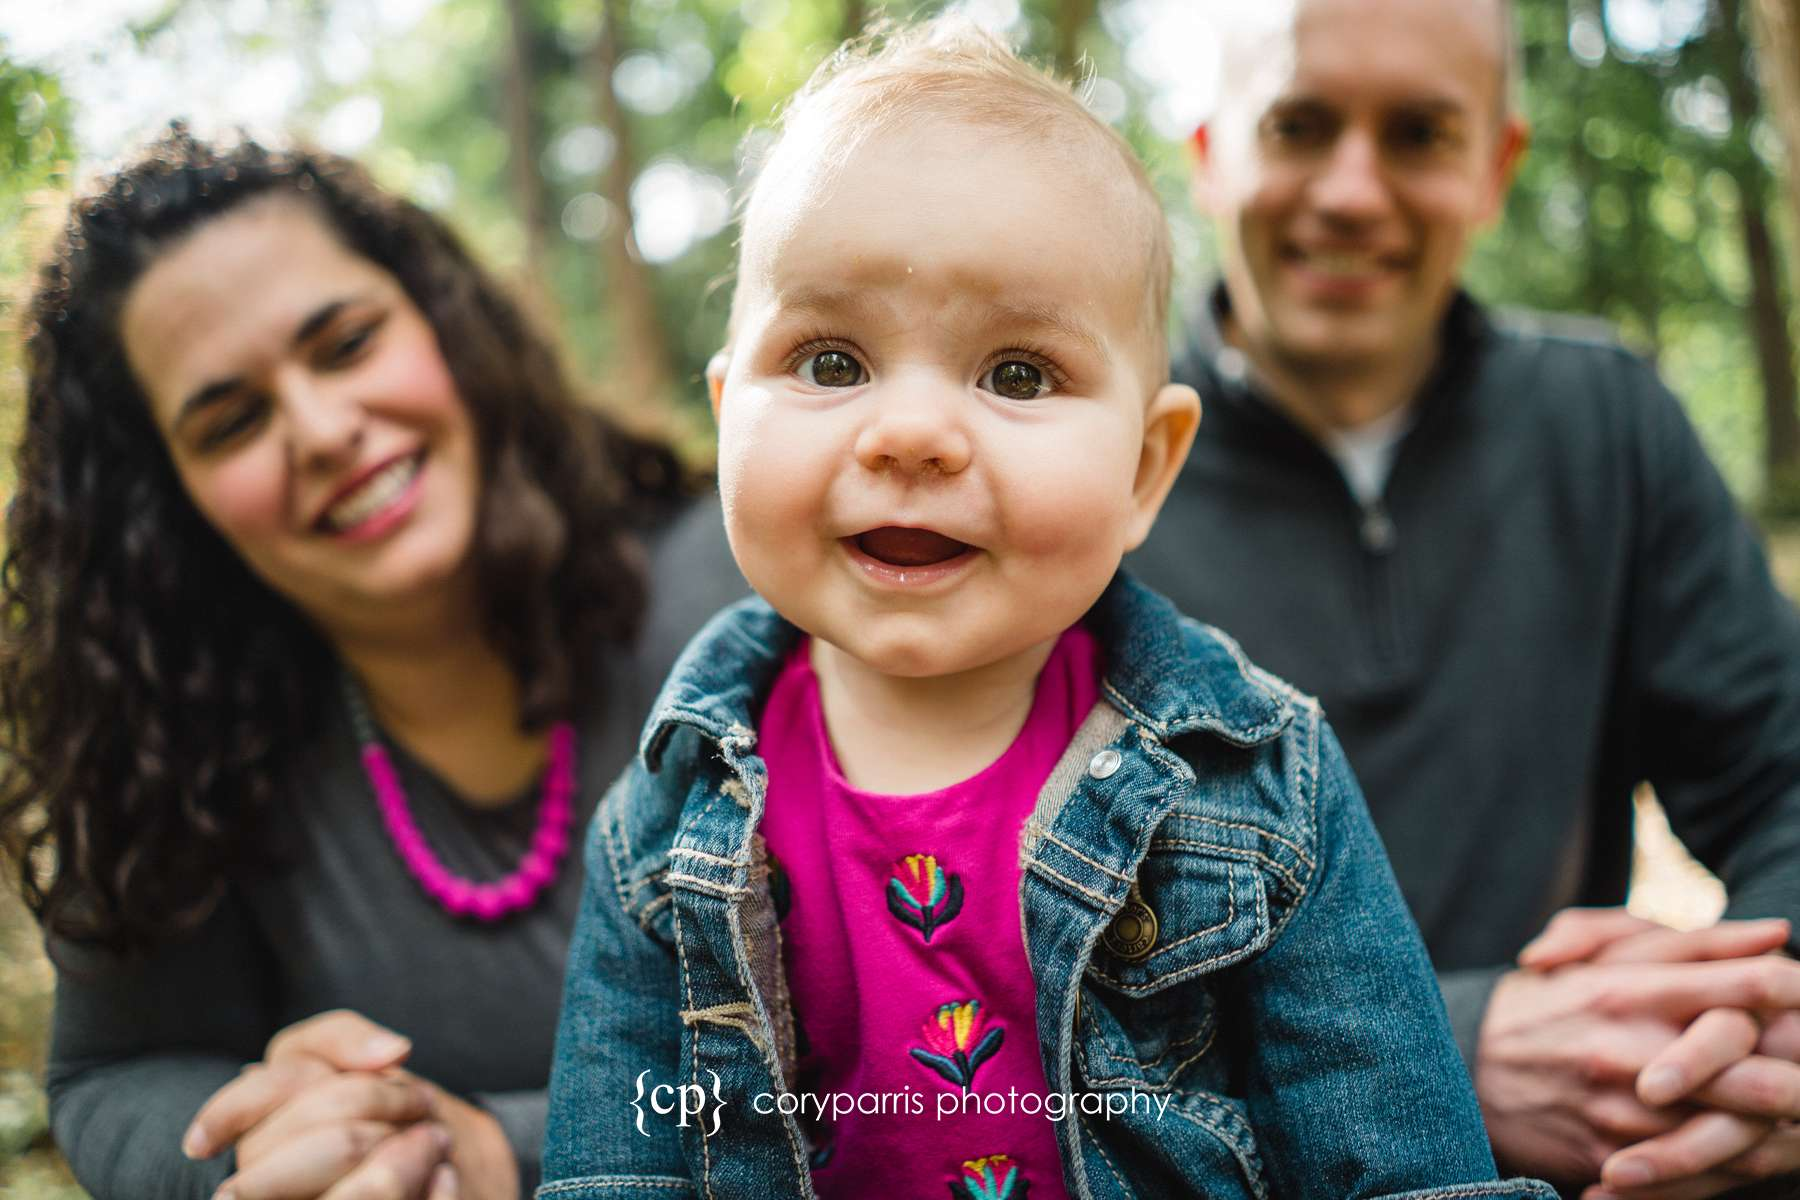 A little girl smiling for the camera in front of her parents at their family portrait session at the Washington Park Arboretum.